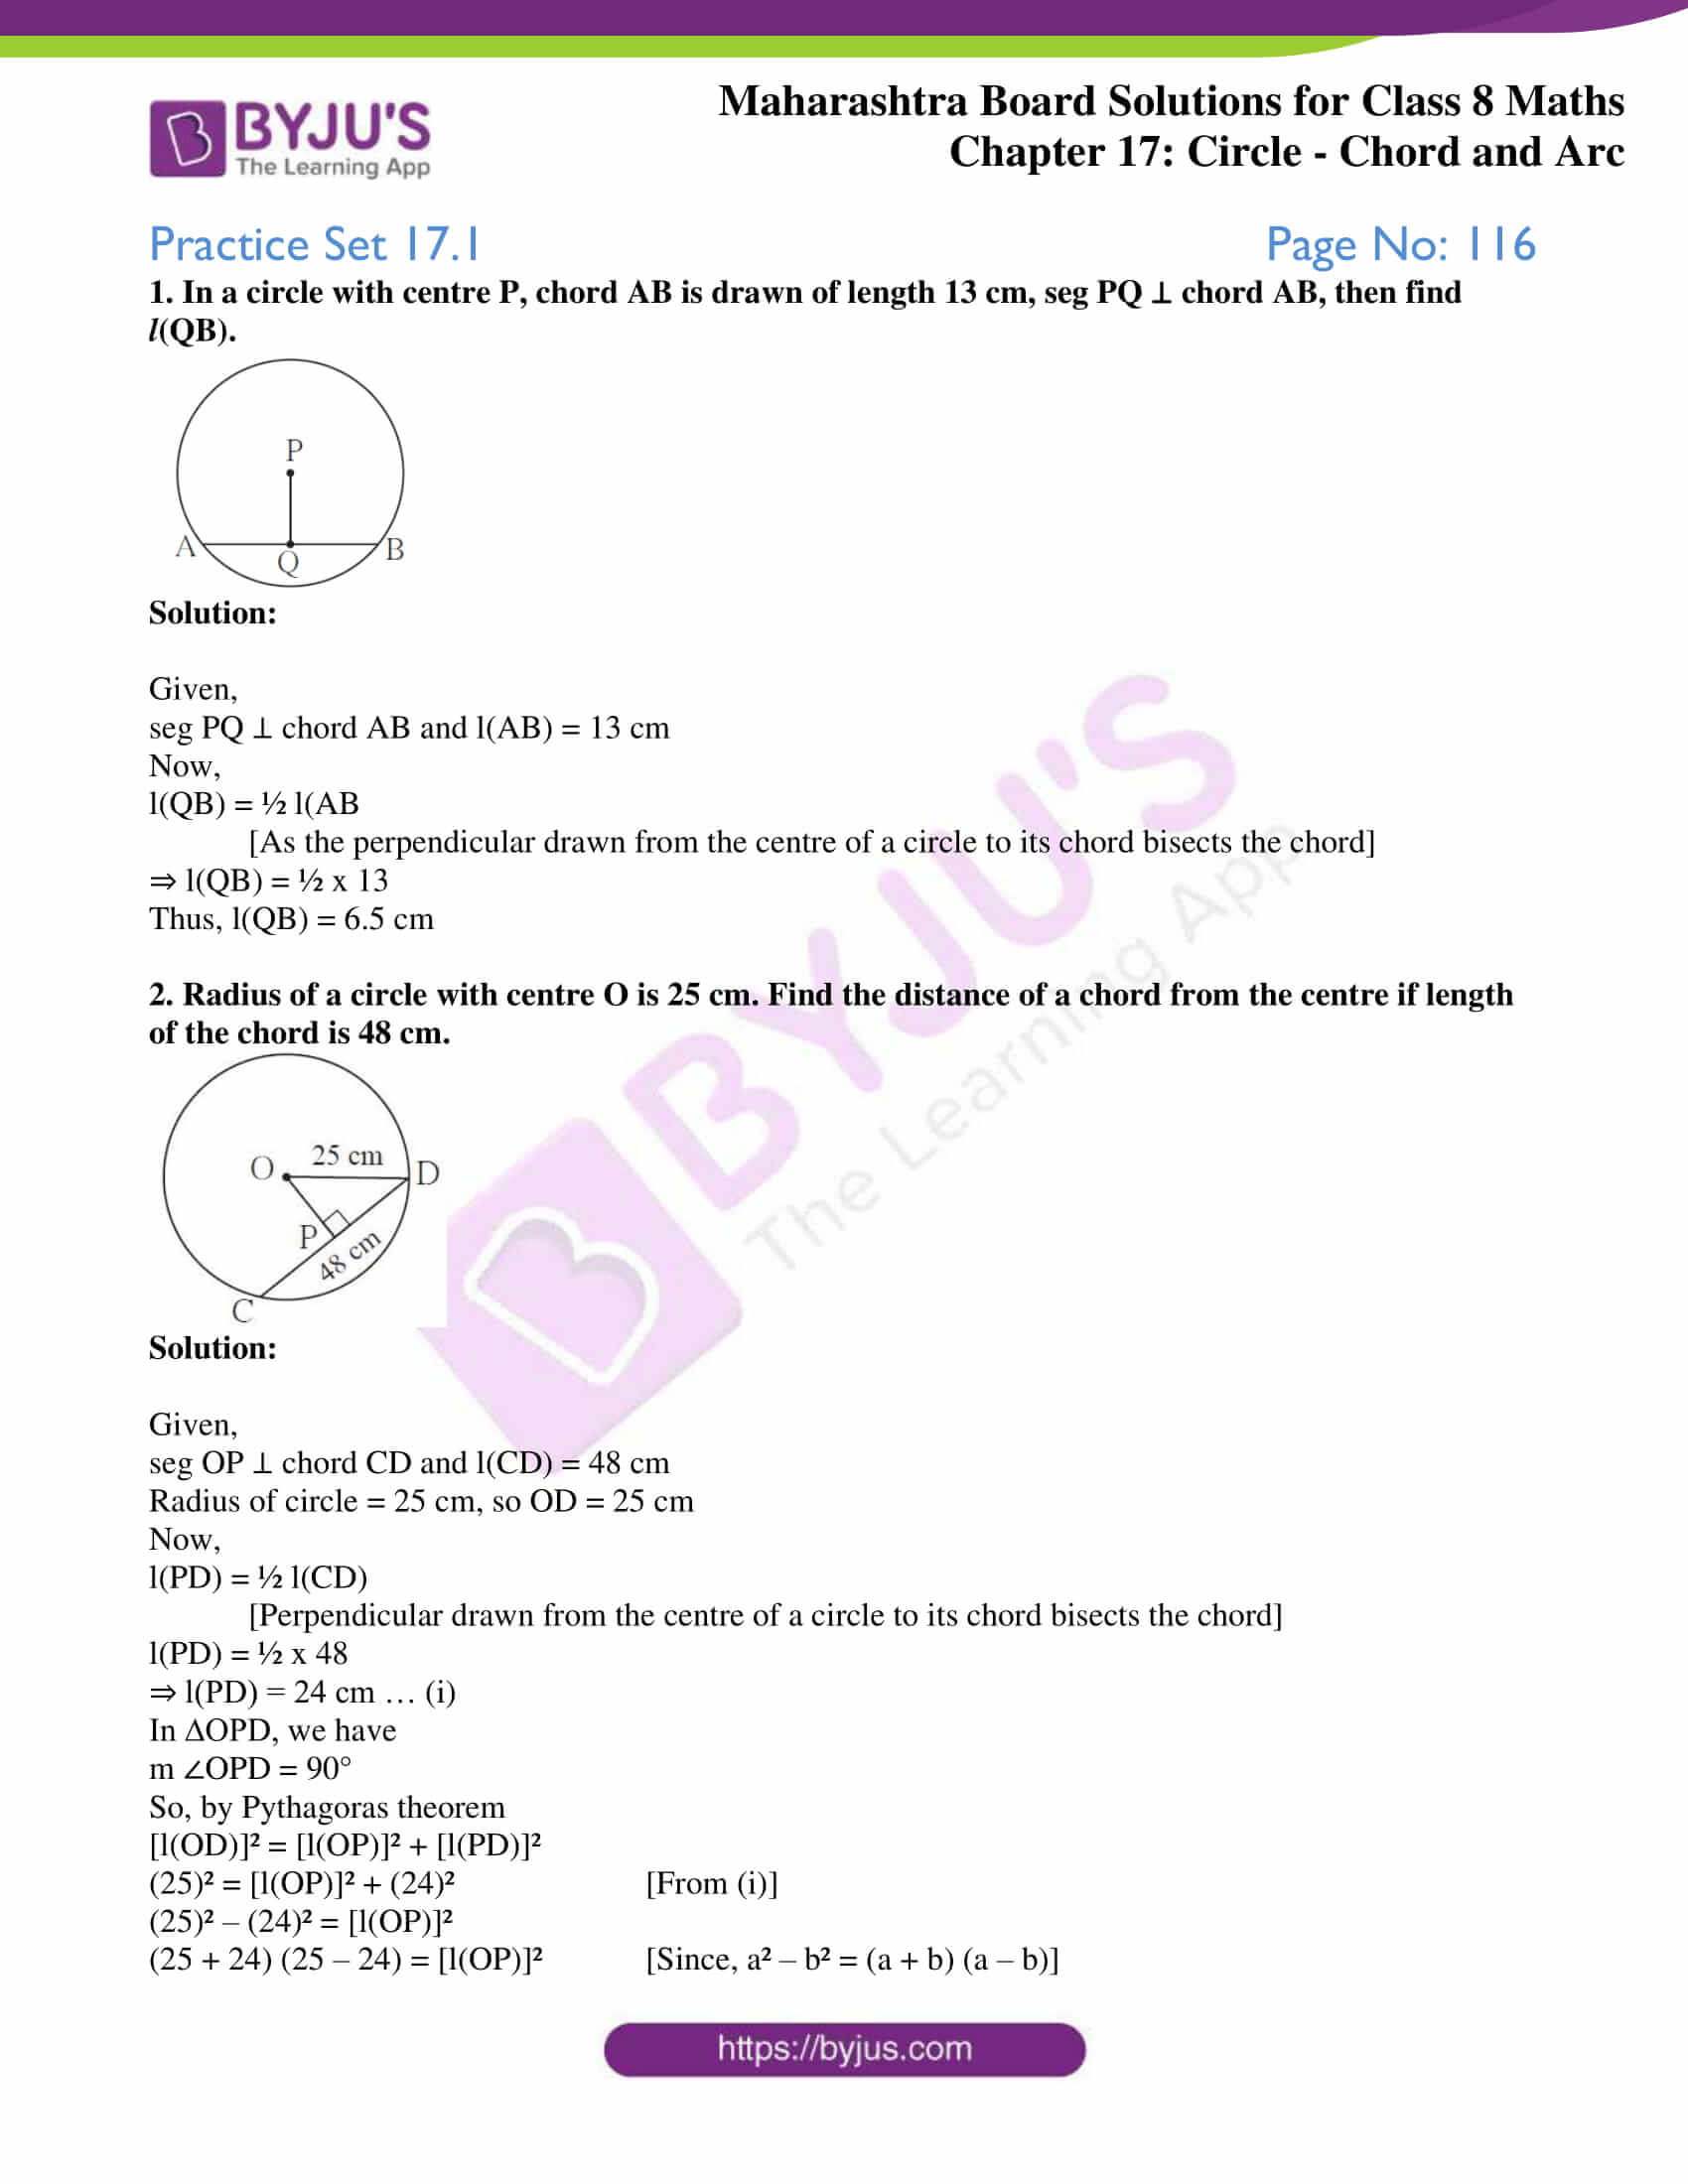 msbshse sol for class 8 maths chapter 17 1